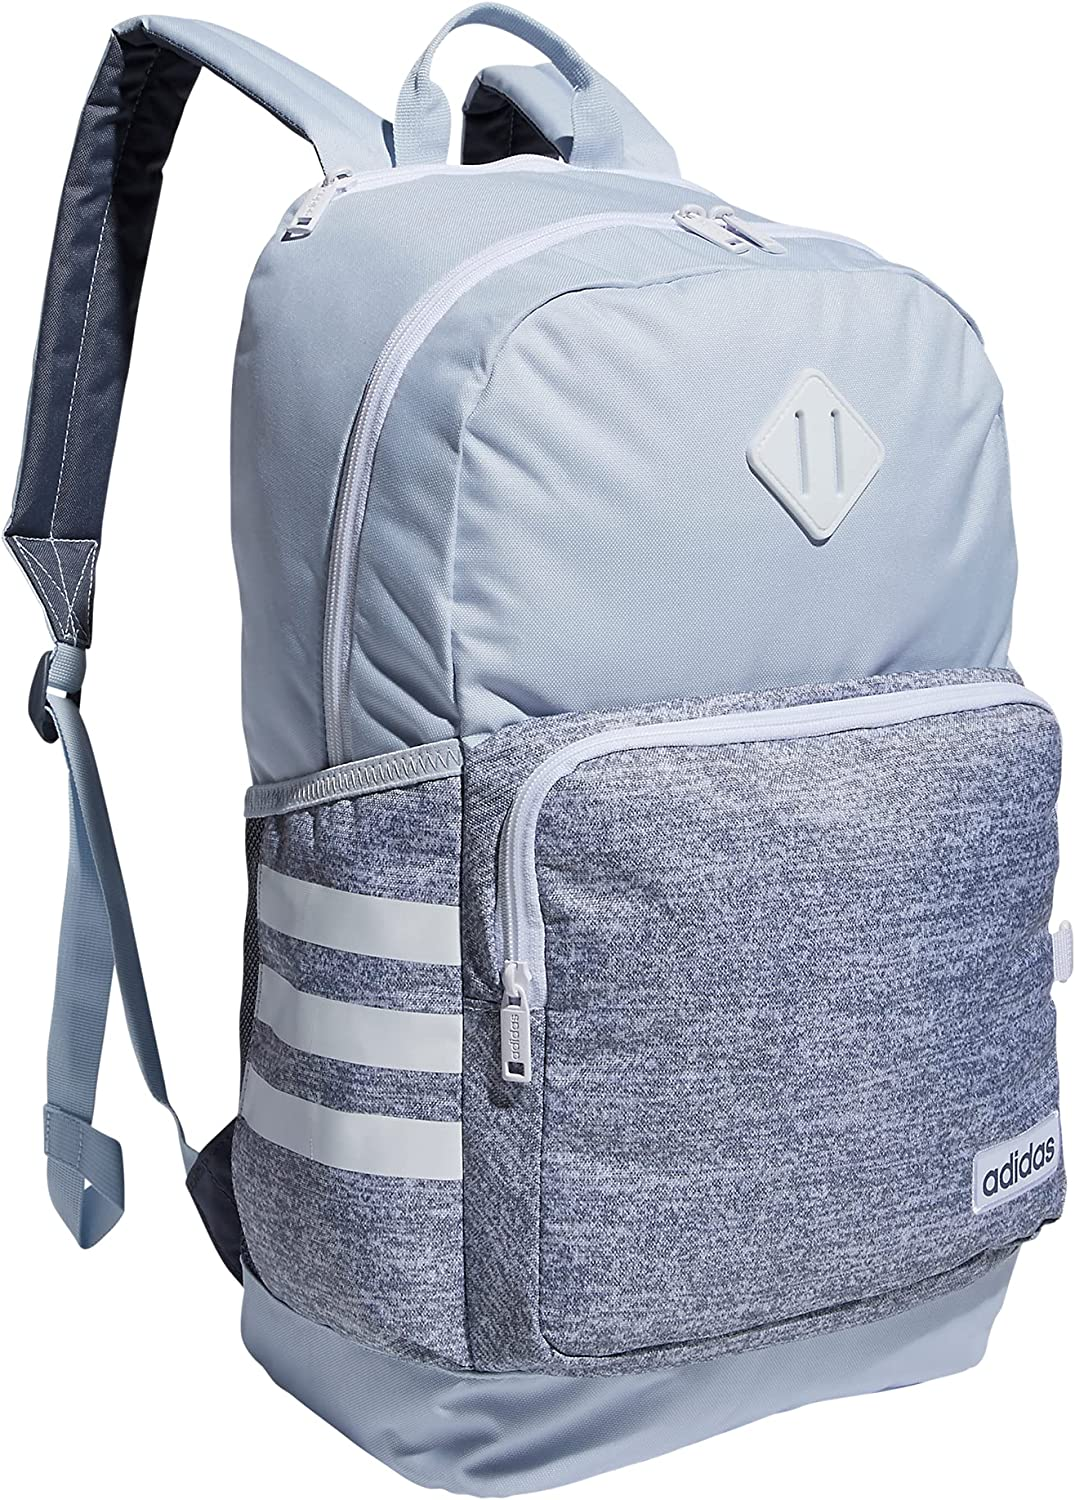 Quality inspection adidas Classic 3S 4 Backpack Jersey Max 62% OFF One Halo Grey White Blue S